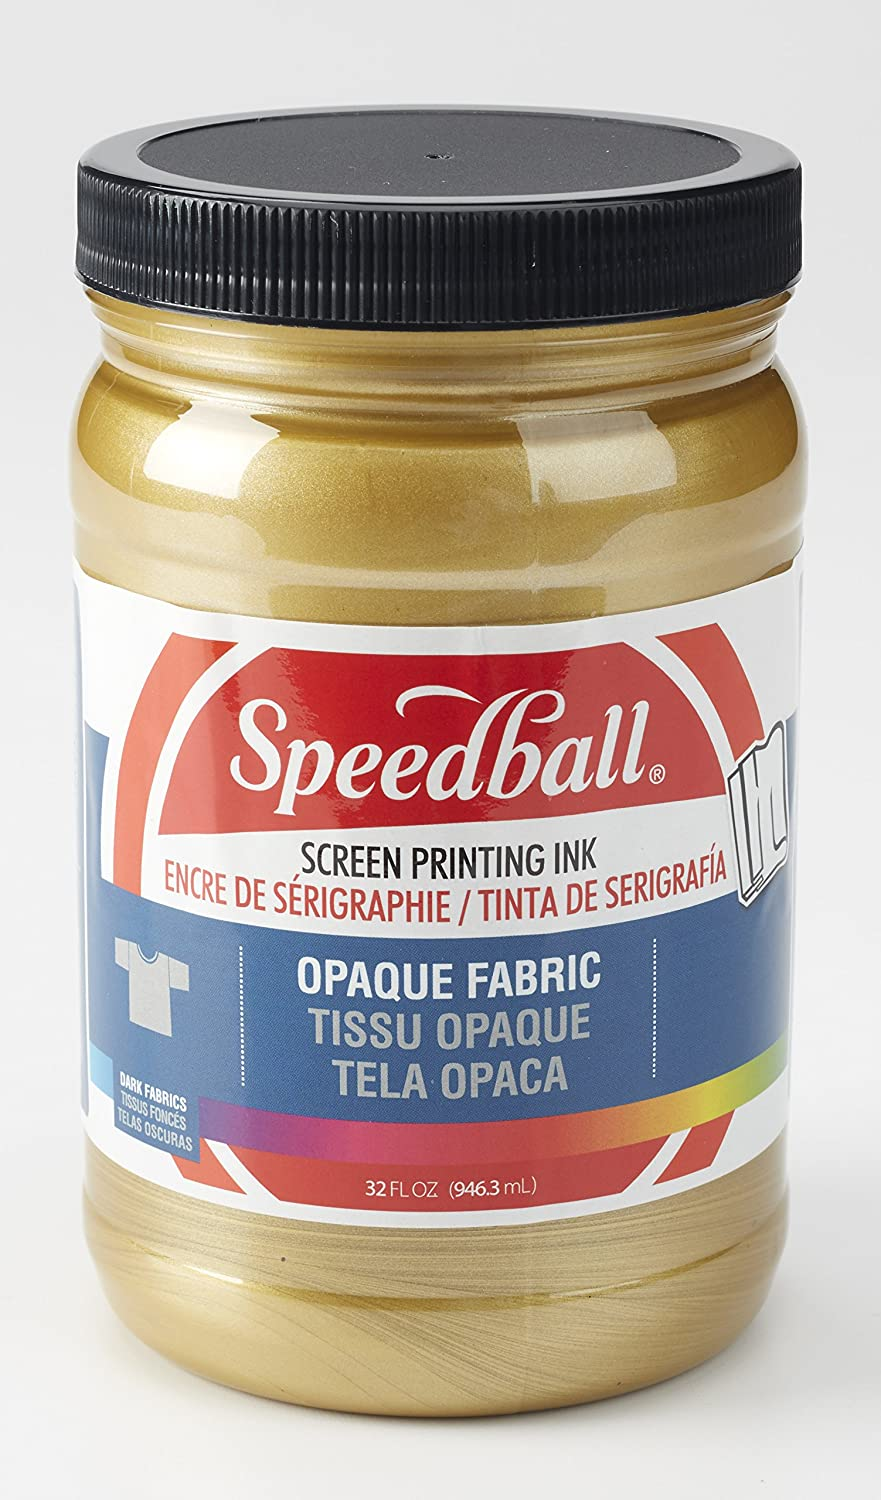 Speedball 004820 Opaque Fabric Screen Printing Ink, 32 Fl. oz, Black Pearl